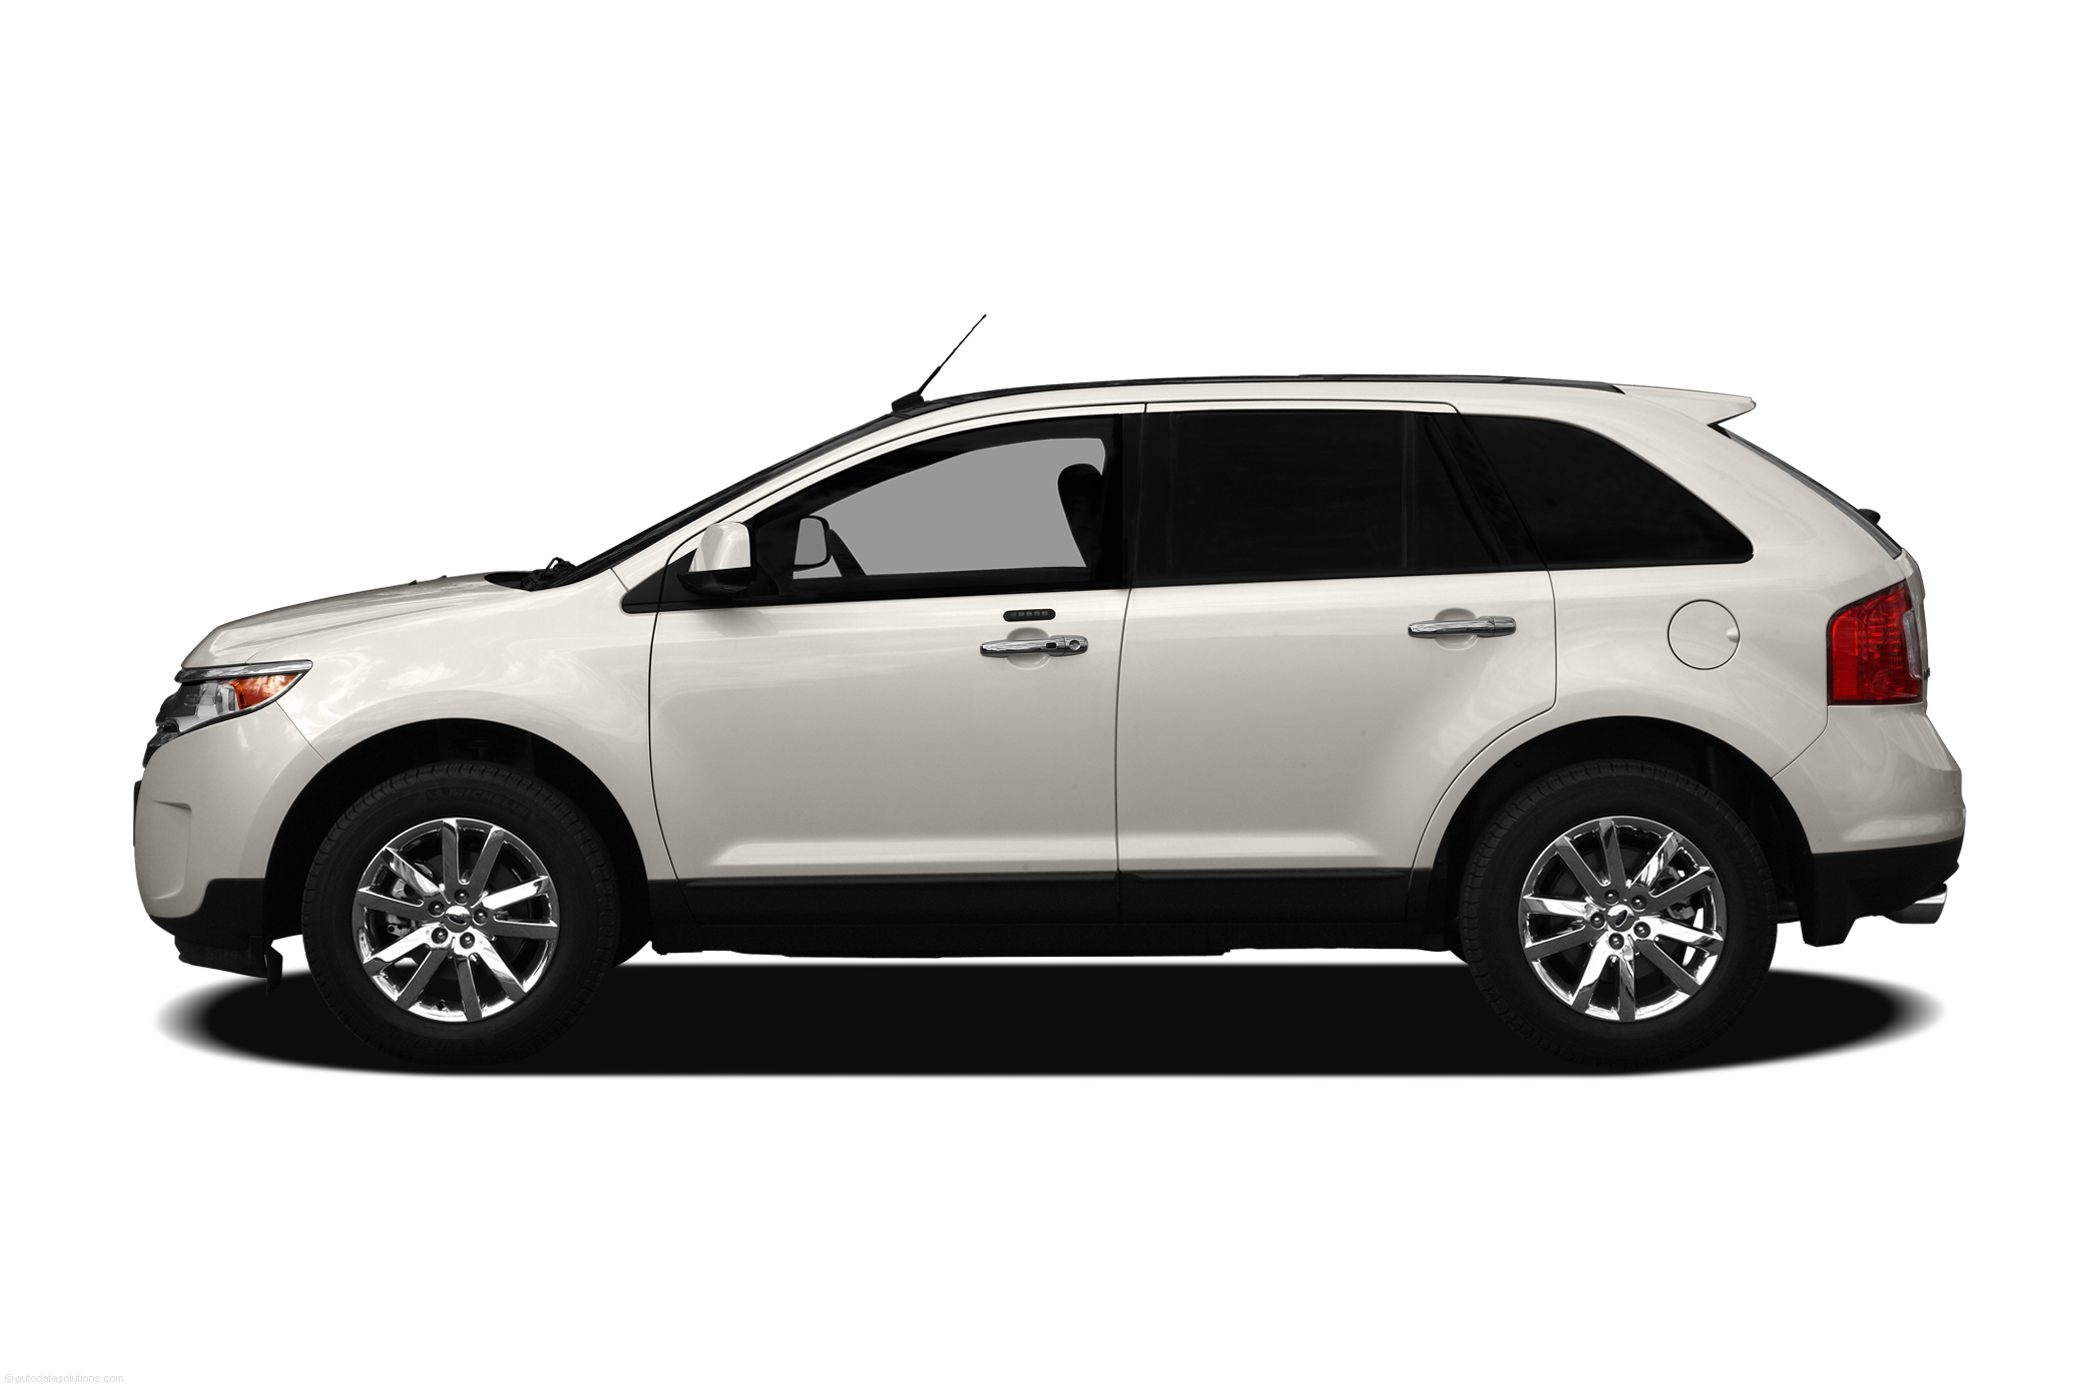 ford edge 2011 price cars and accessories trends gallery ford edge invoice